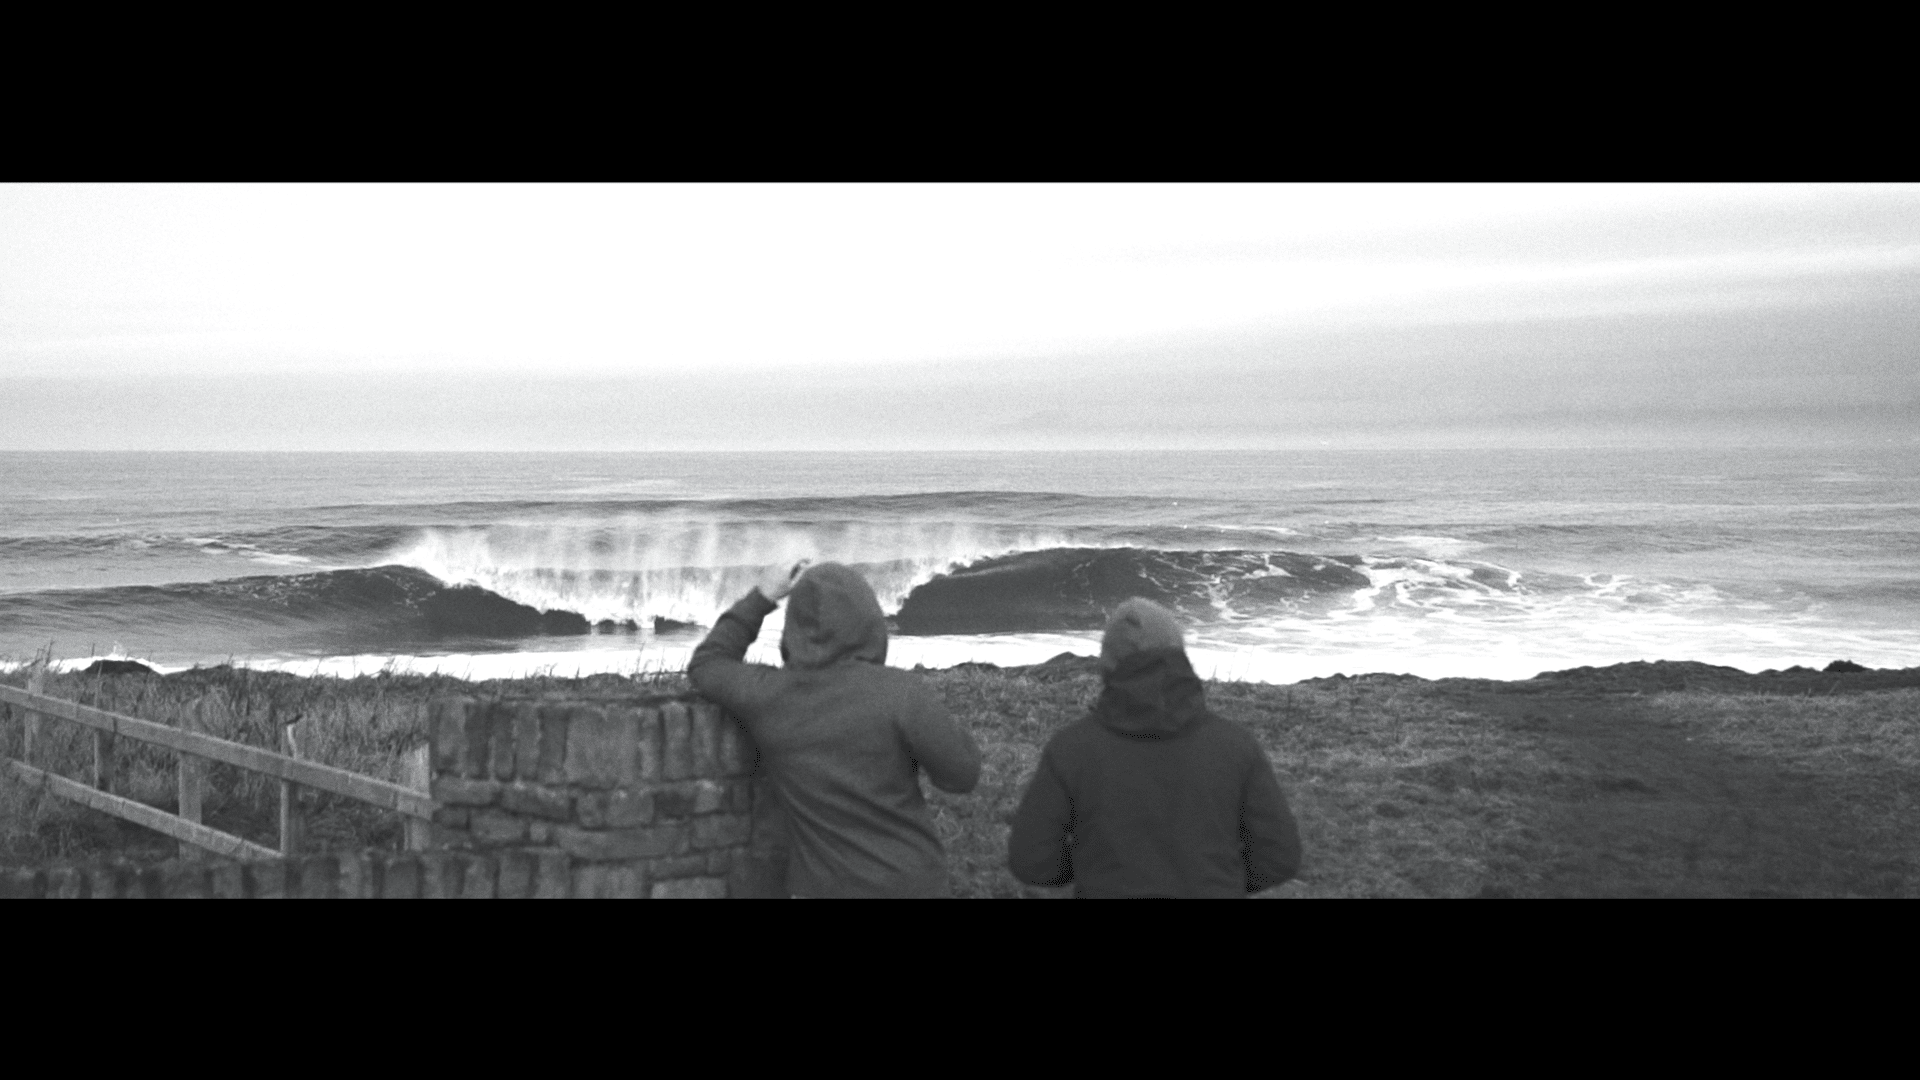 The Shorties Entry: LaZy DaYz // A film by Chris Levi. Long-time friends, shapers and hard chargers Ben Skinner & Markie Lascelles score perfect Irish reefs